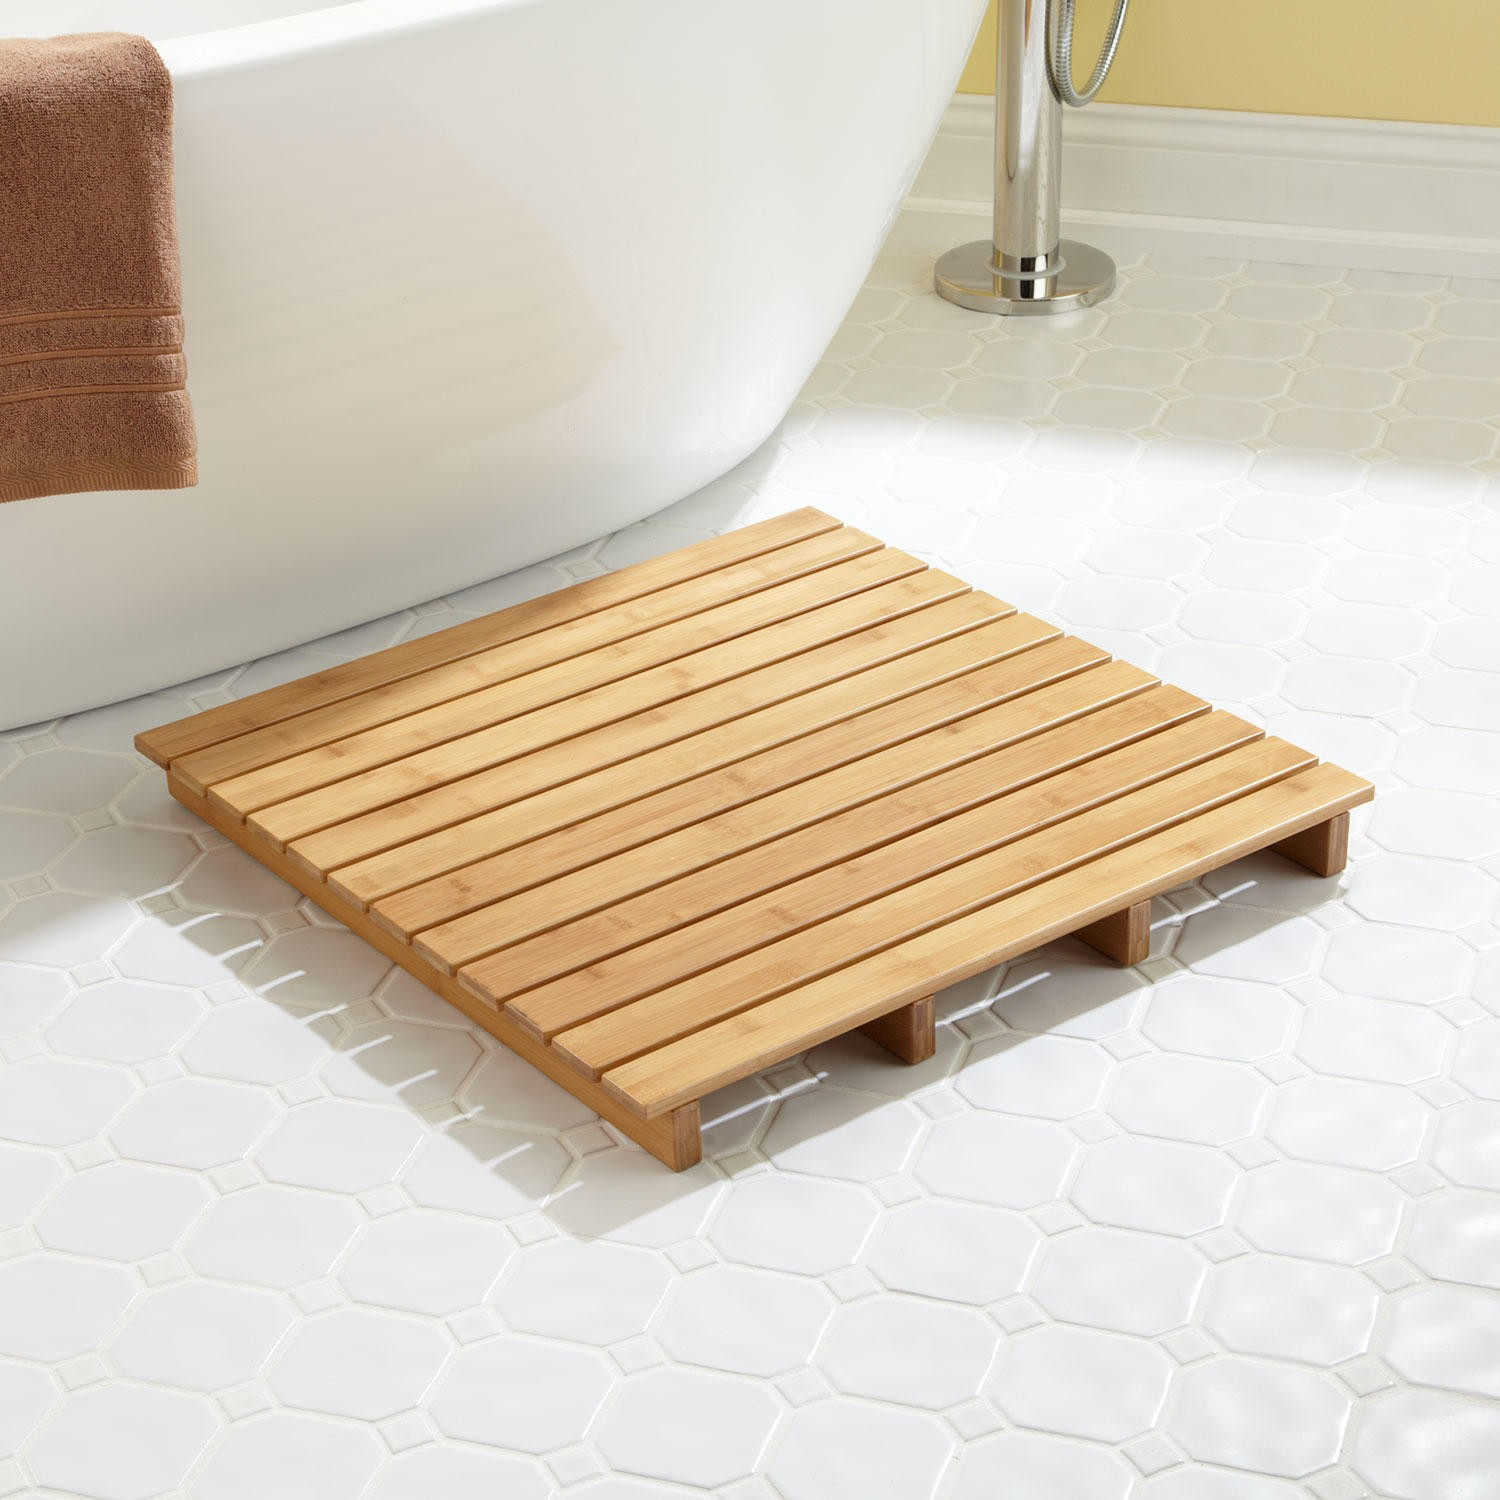 Bath Mat Ideas To Make Your Bathroom Feel More Like A Spa - Cheap bath rug sets for bathroom decorating ideas